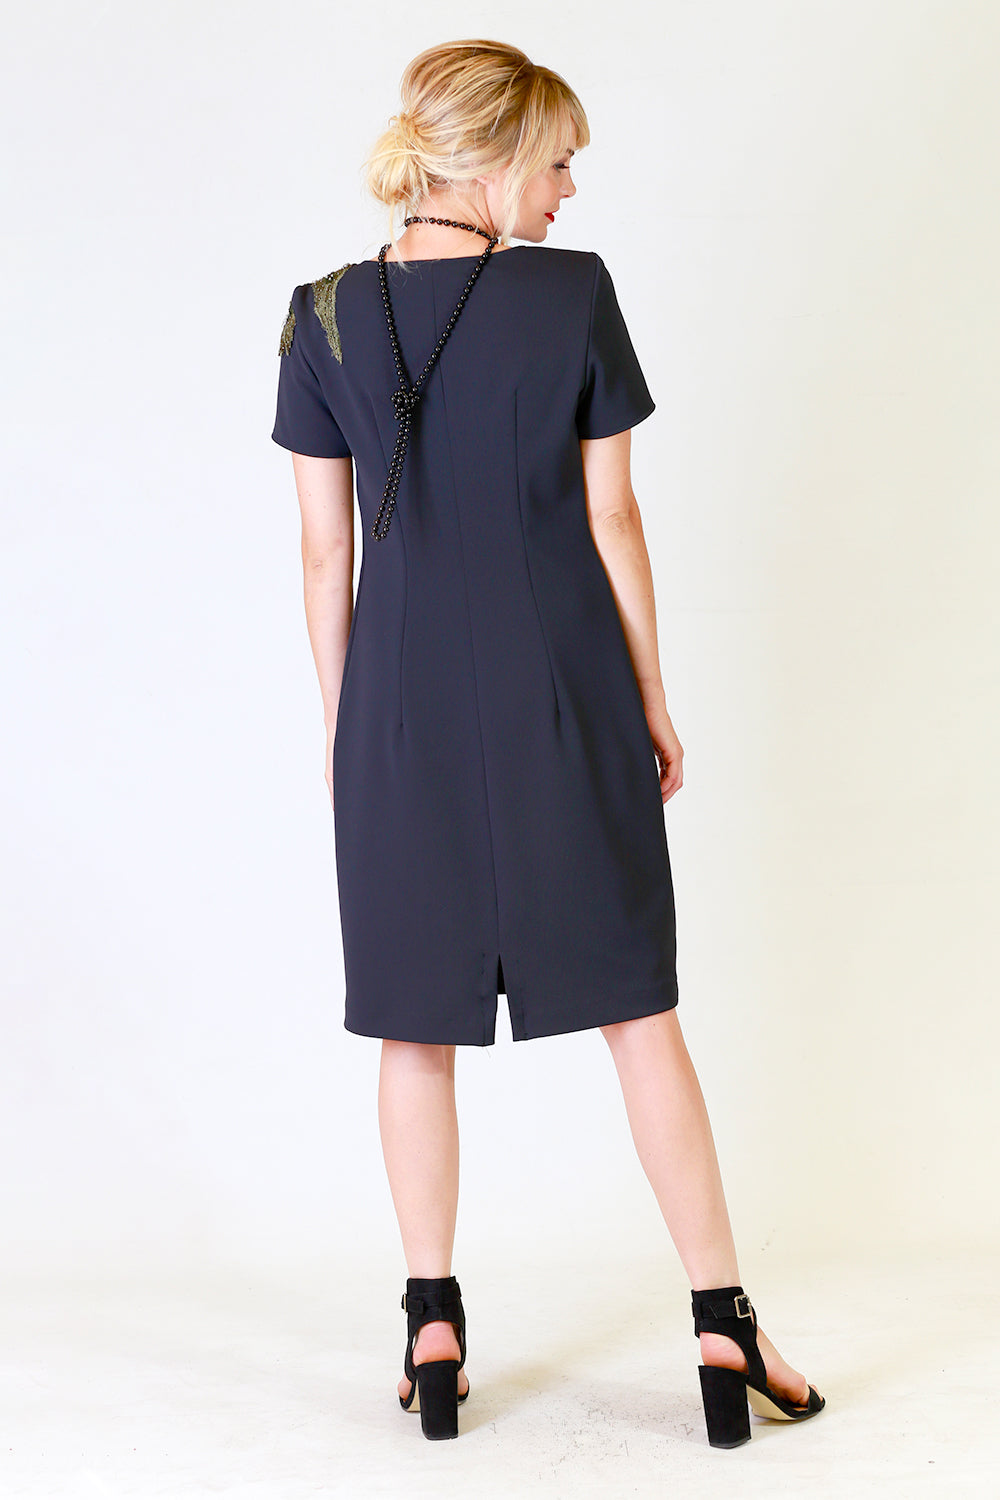 Karolina Kayla Dress | New Zealand Designer | Online | Annah Stretton